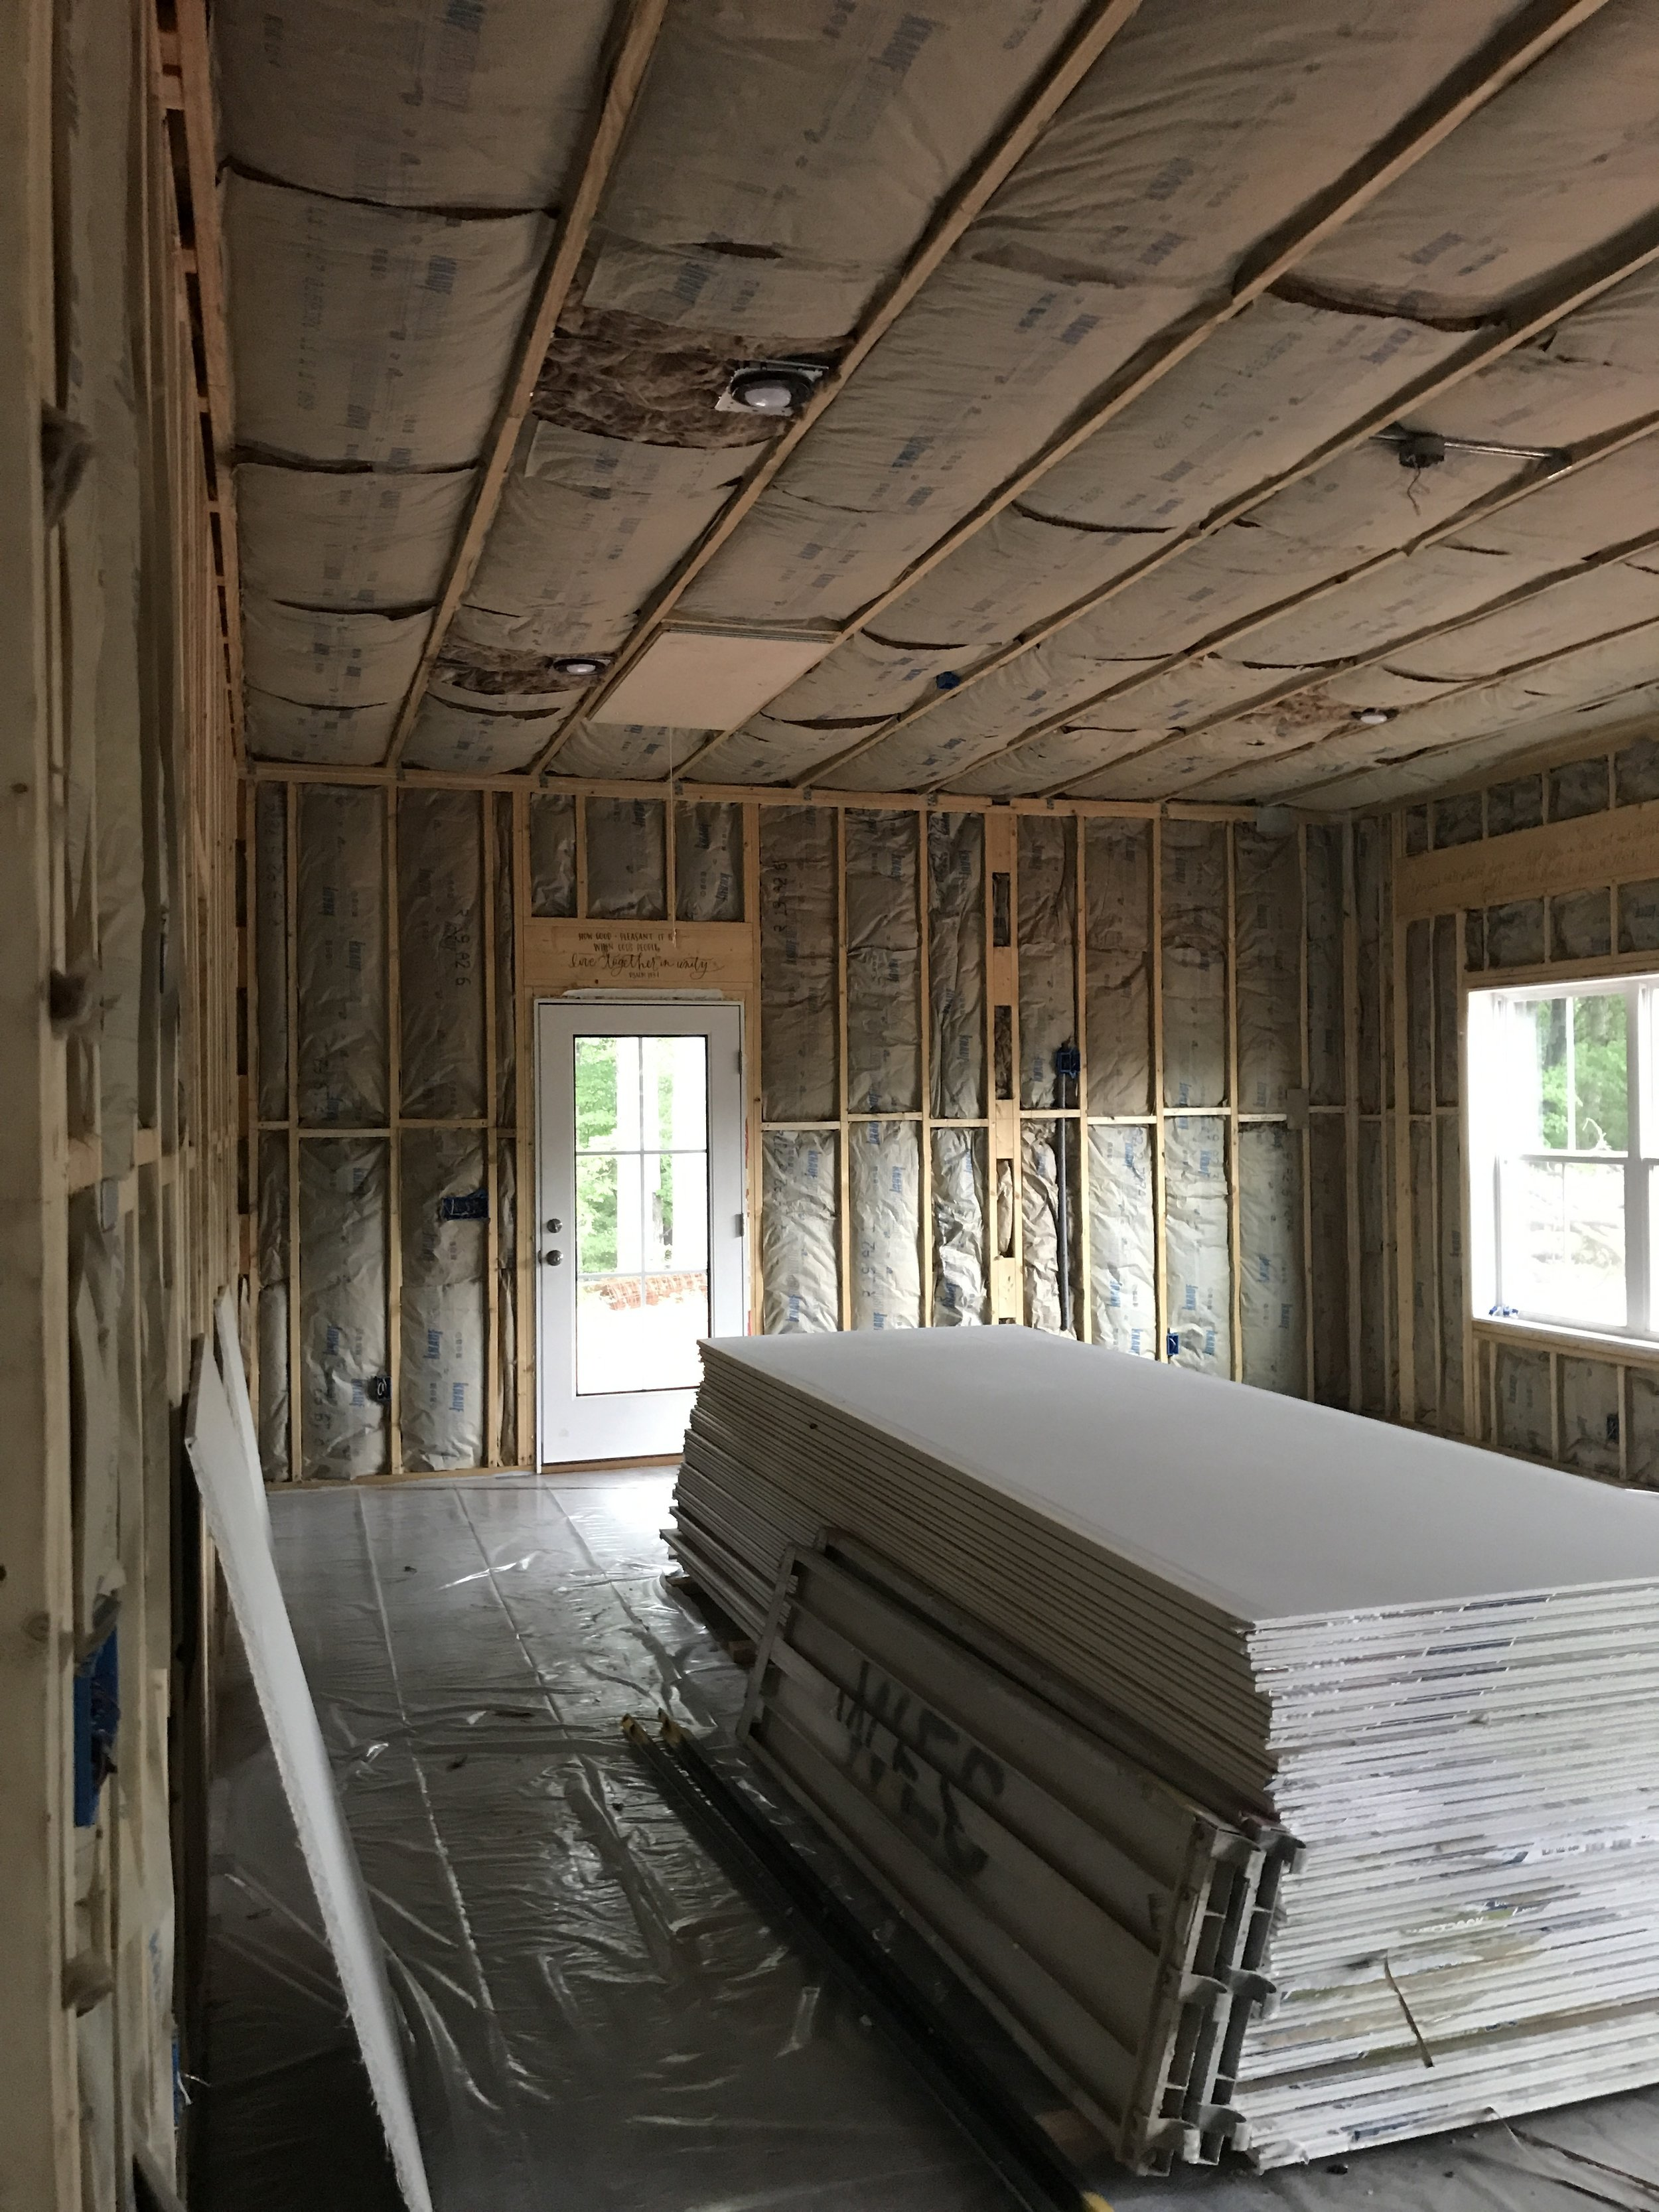 Between the insualtion and Sheetrock instalations